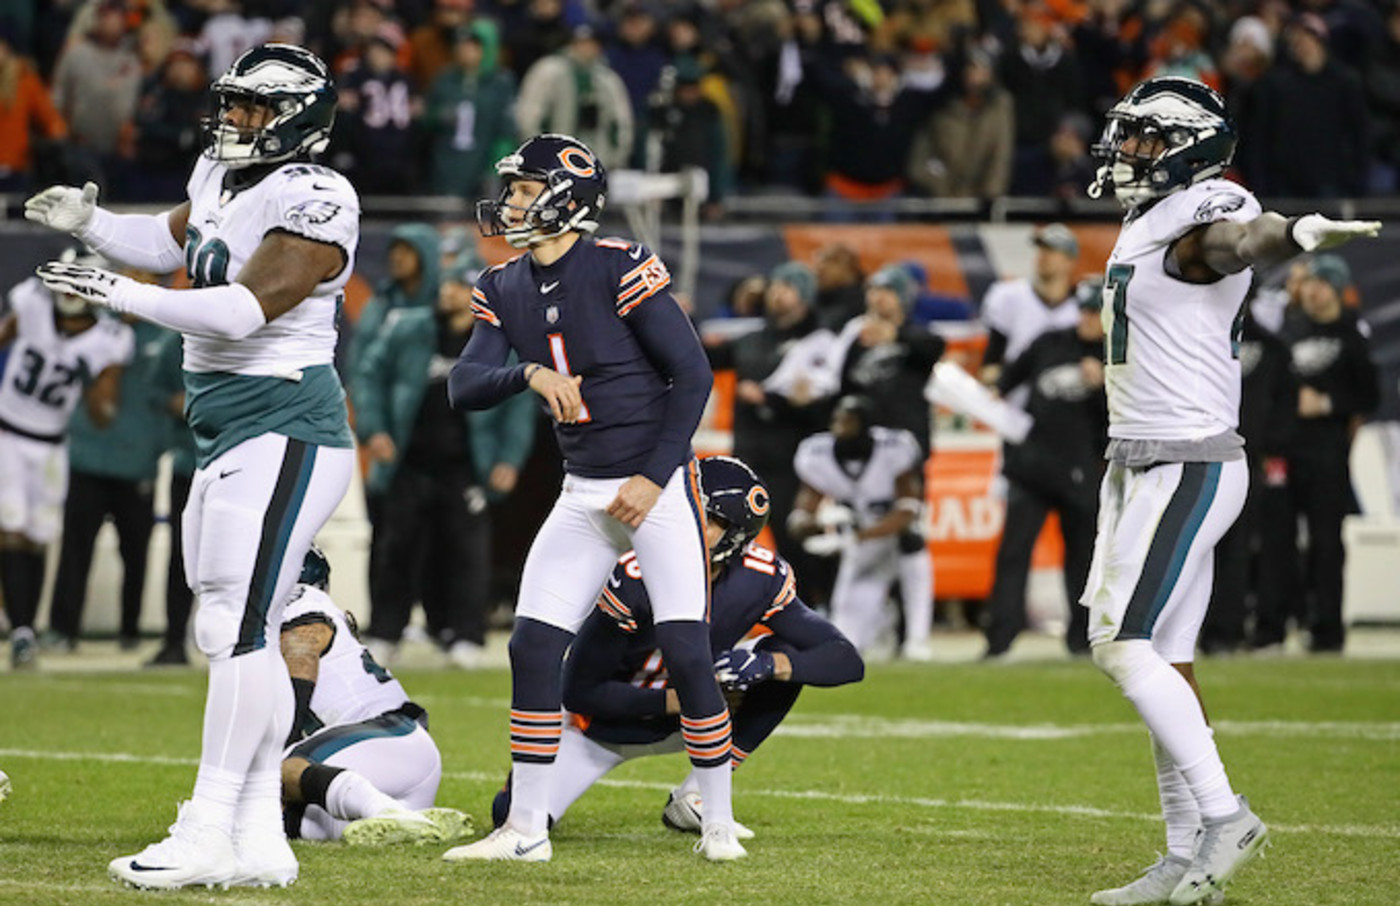 Cody Parkey watches missed field goal.